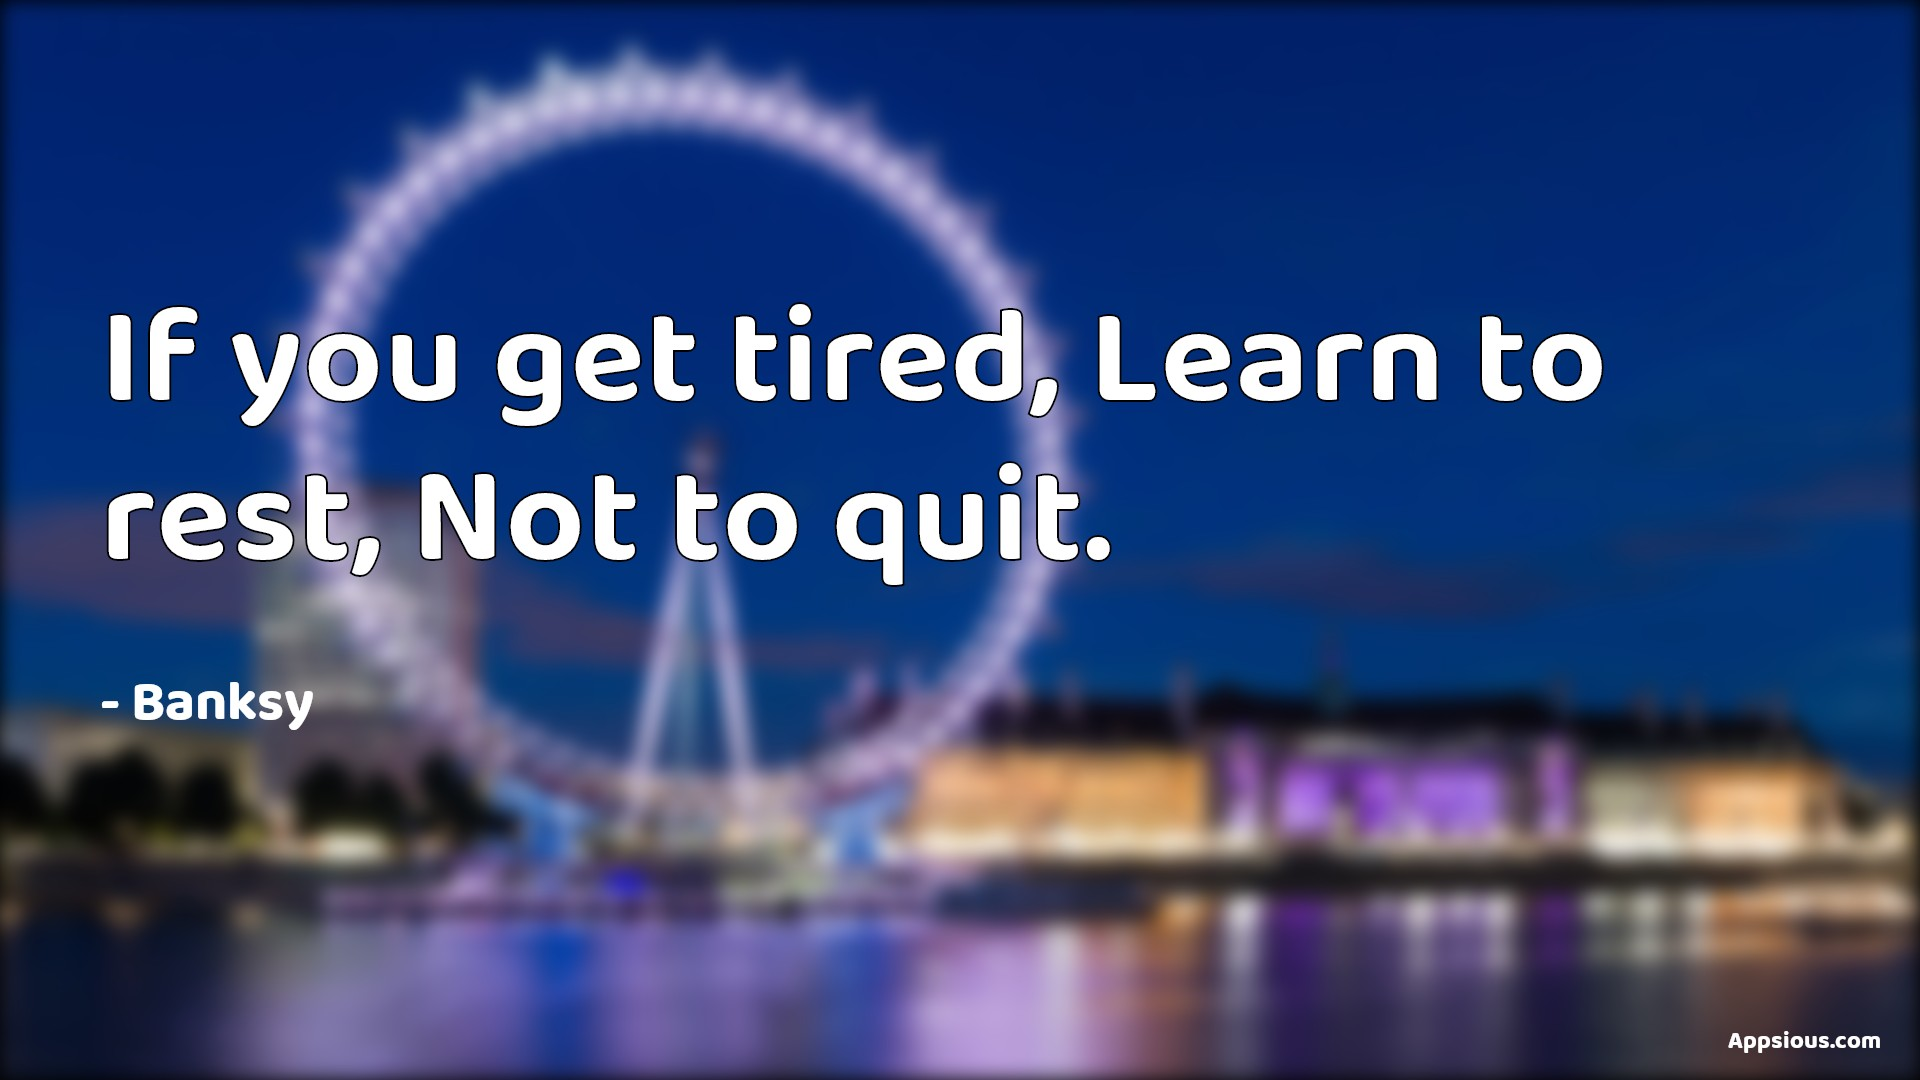 If you get tired, Learn to rest, Not to quit.